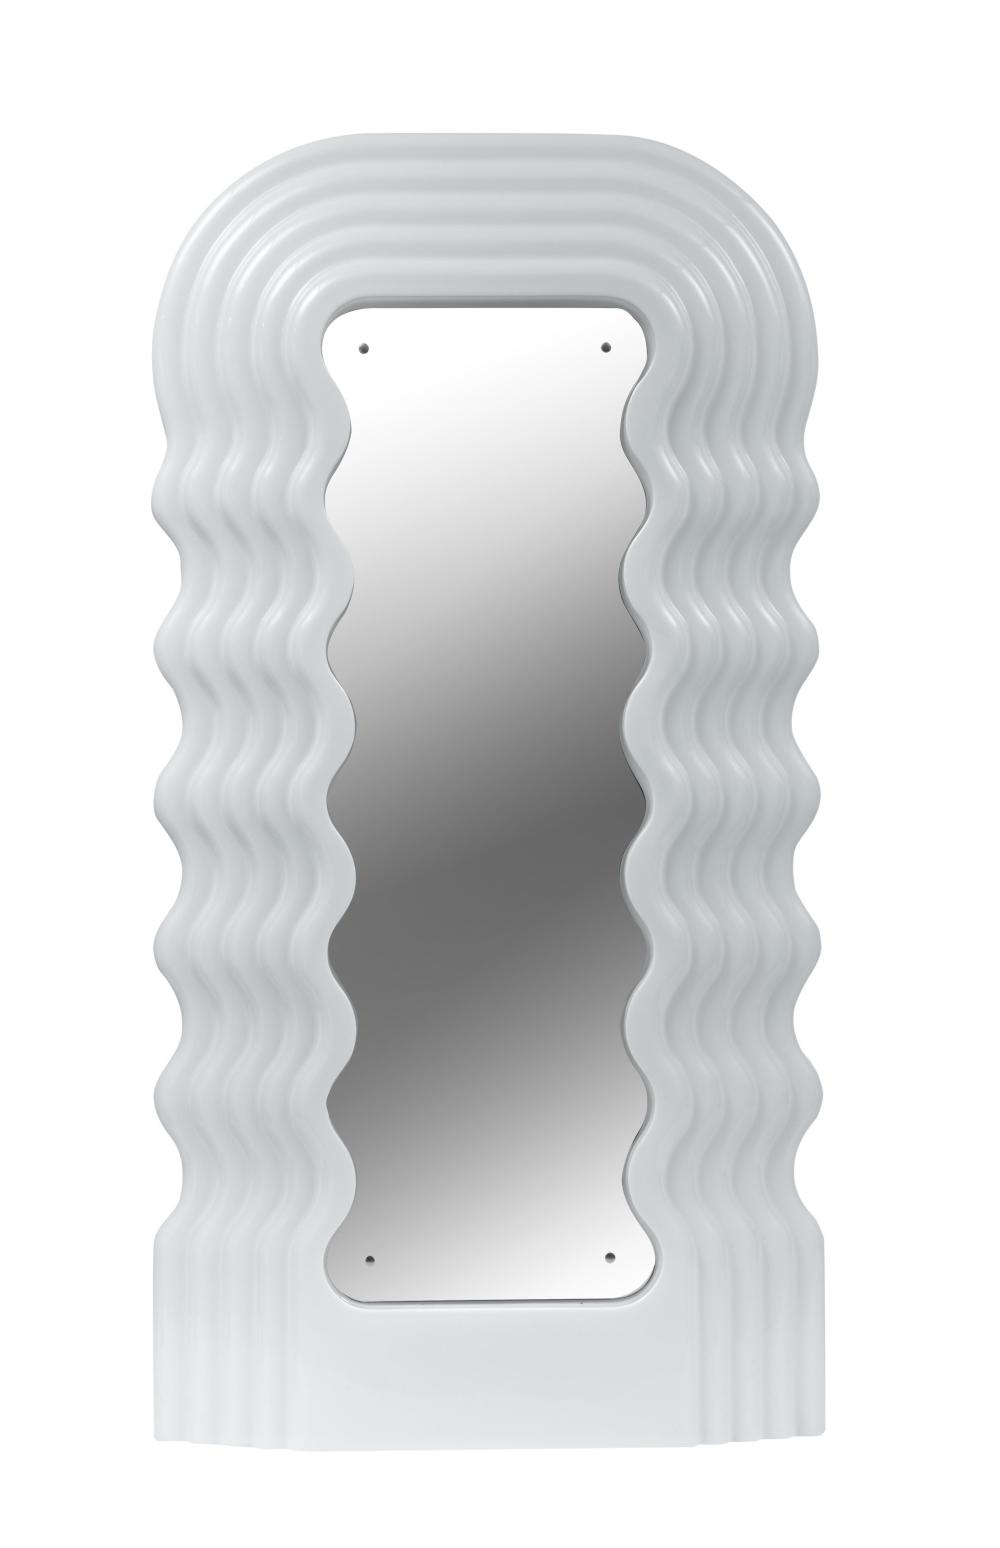 A white '70 design 'Ultrafragola' mirror, attributed to Ettore Sottsass, 102 x 196 cm